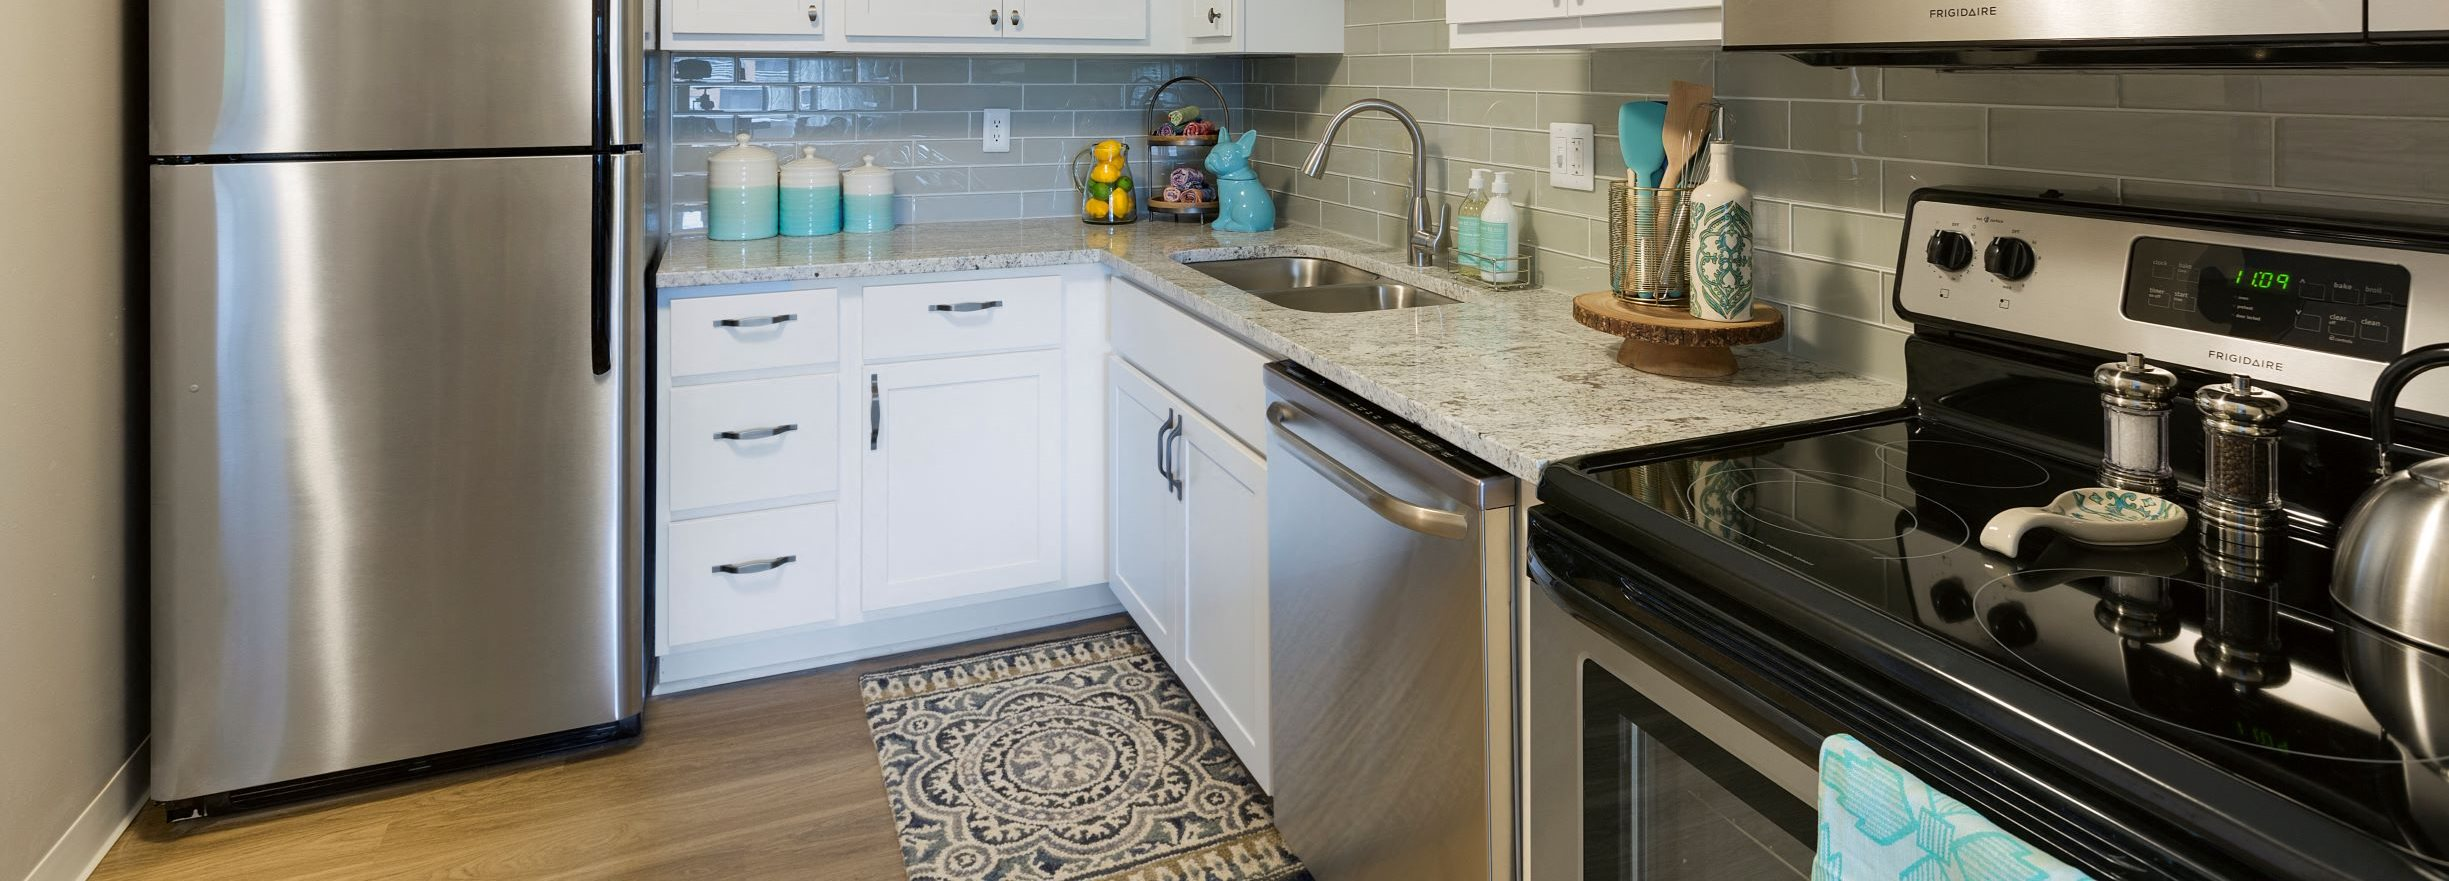 Stainless Steel Appliances In Apartment Kitchens At The Burlington Apartments In St. Paul, MN